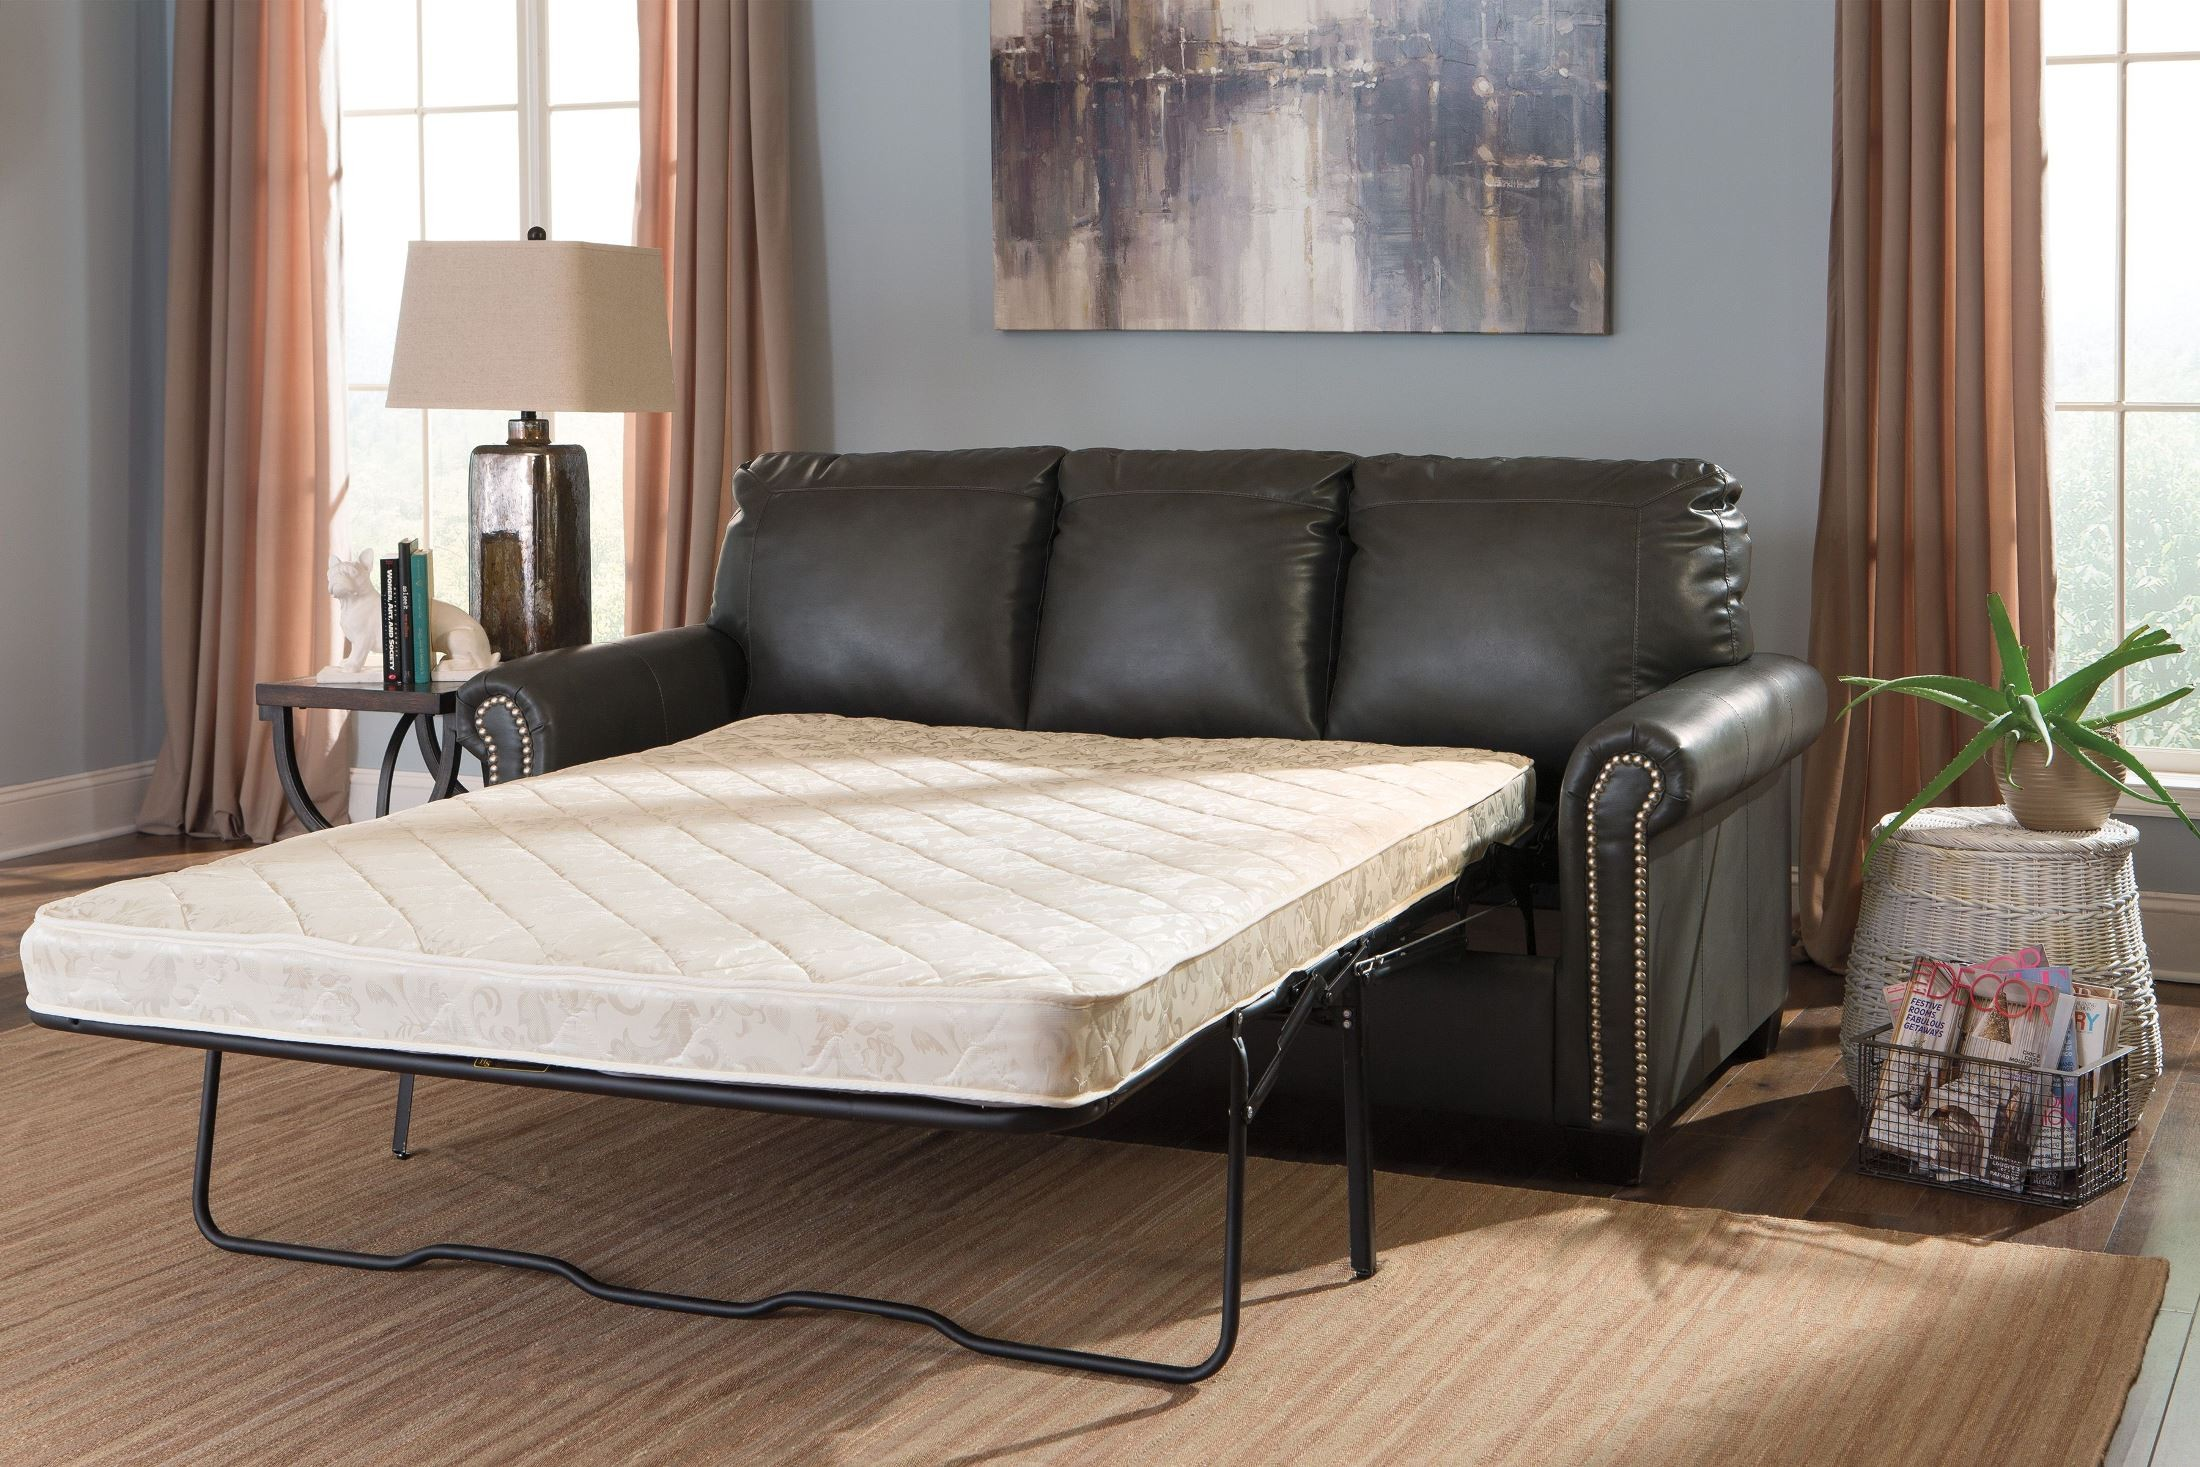 ashley furniture durablend sleeper sofa how to make a simple cover lottie slate full from